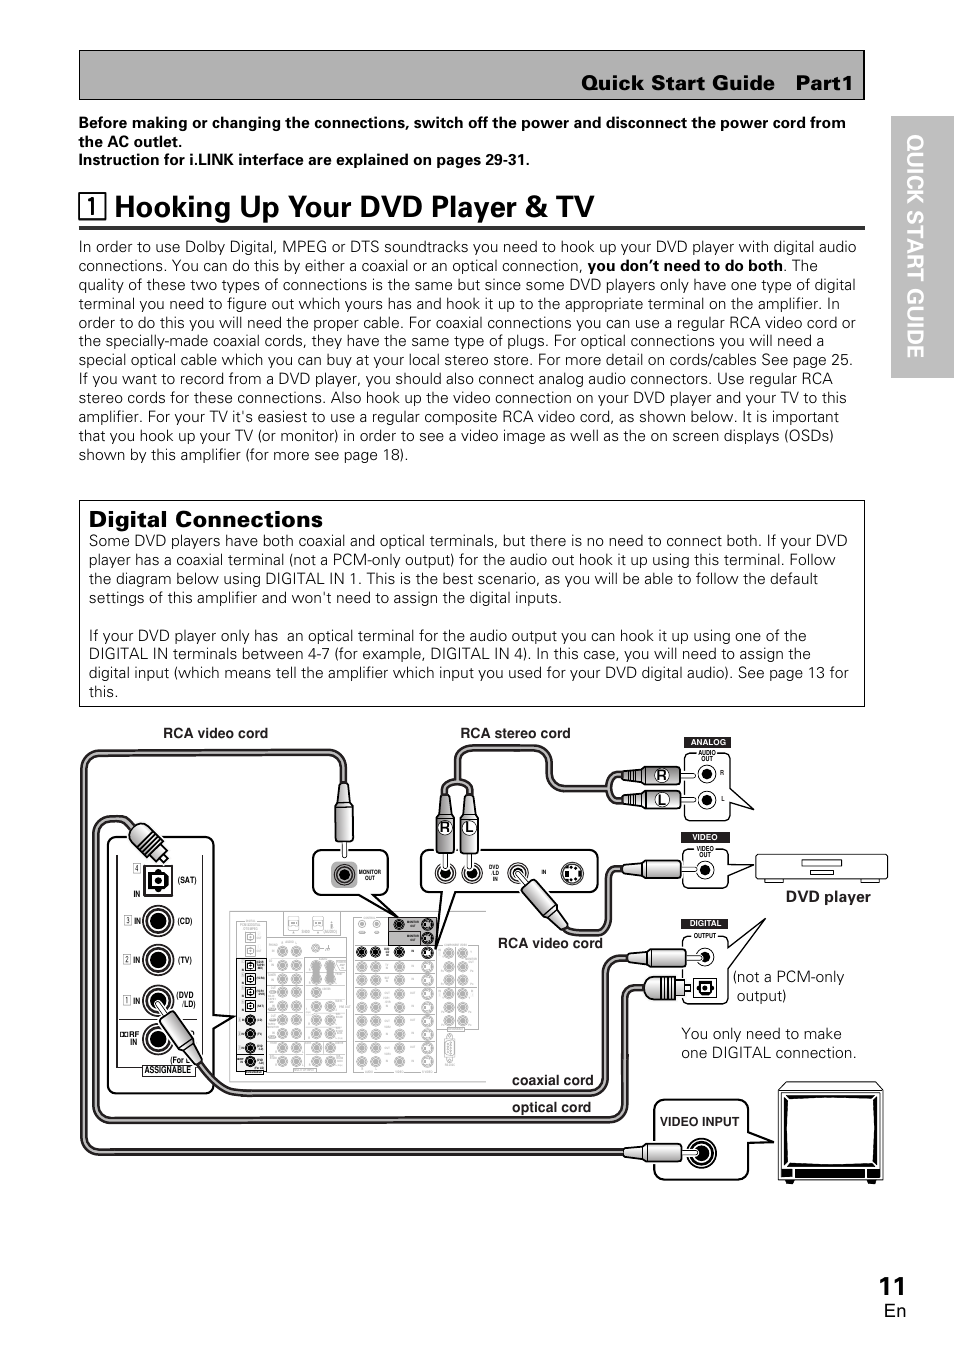 1 hooking up your dvd player & tv, 11 hooking up your dvd player ...